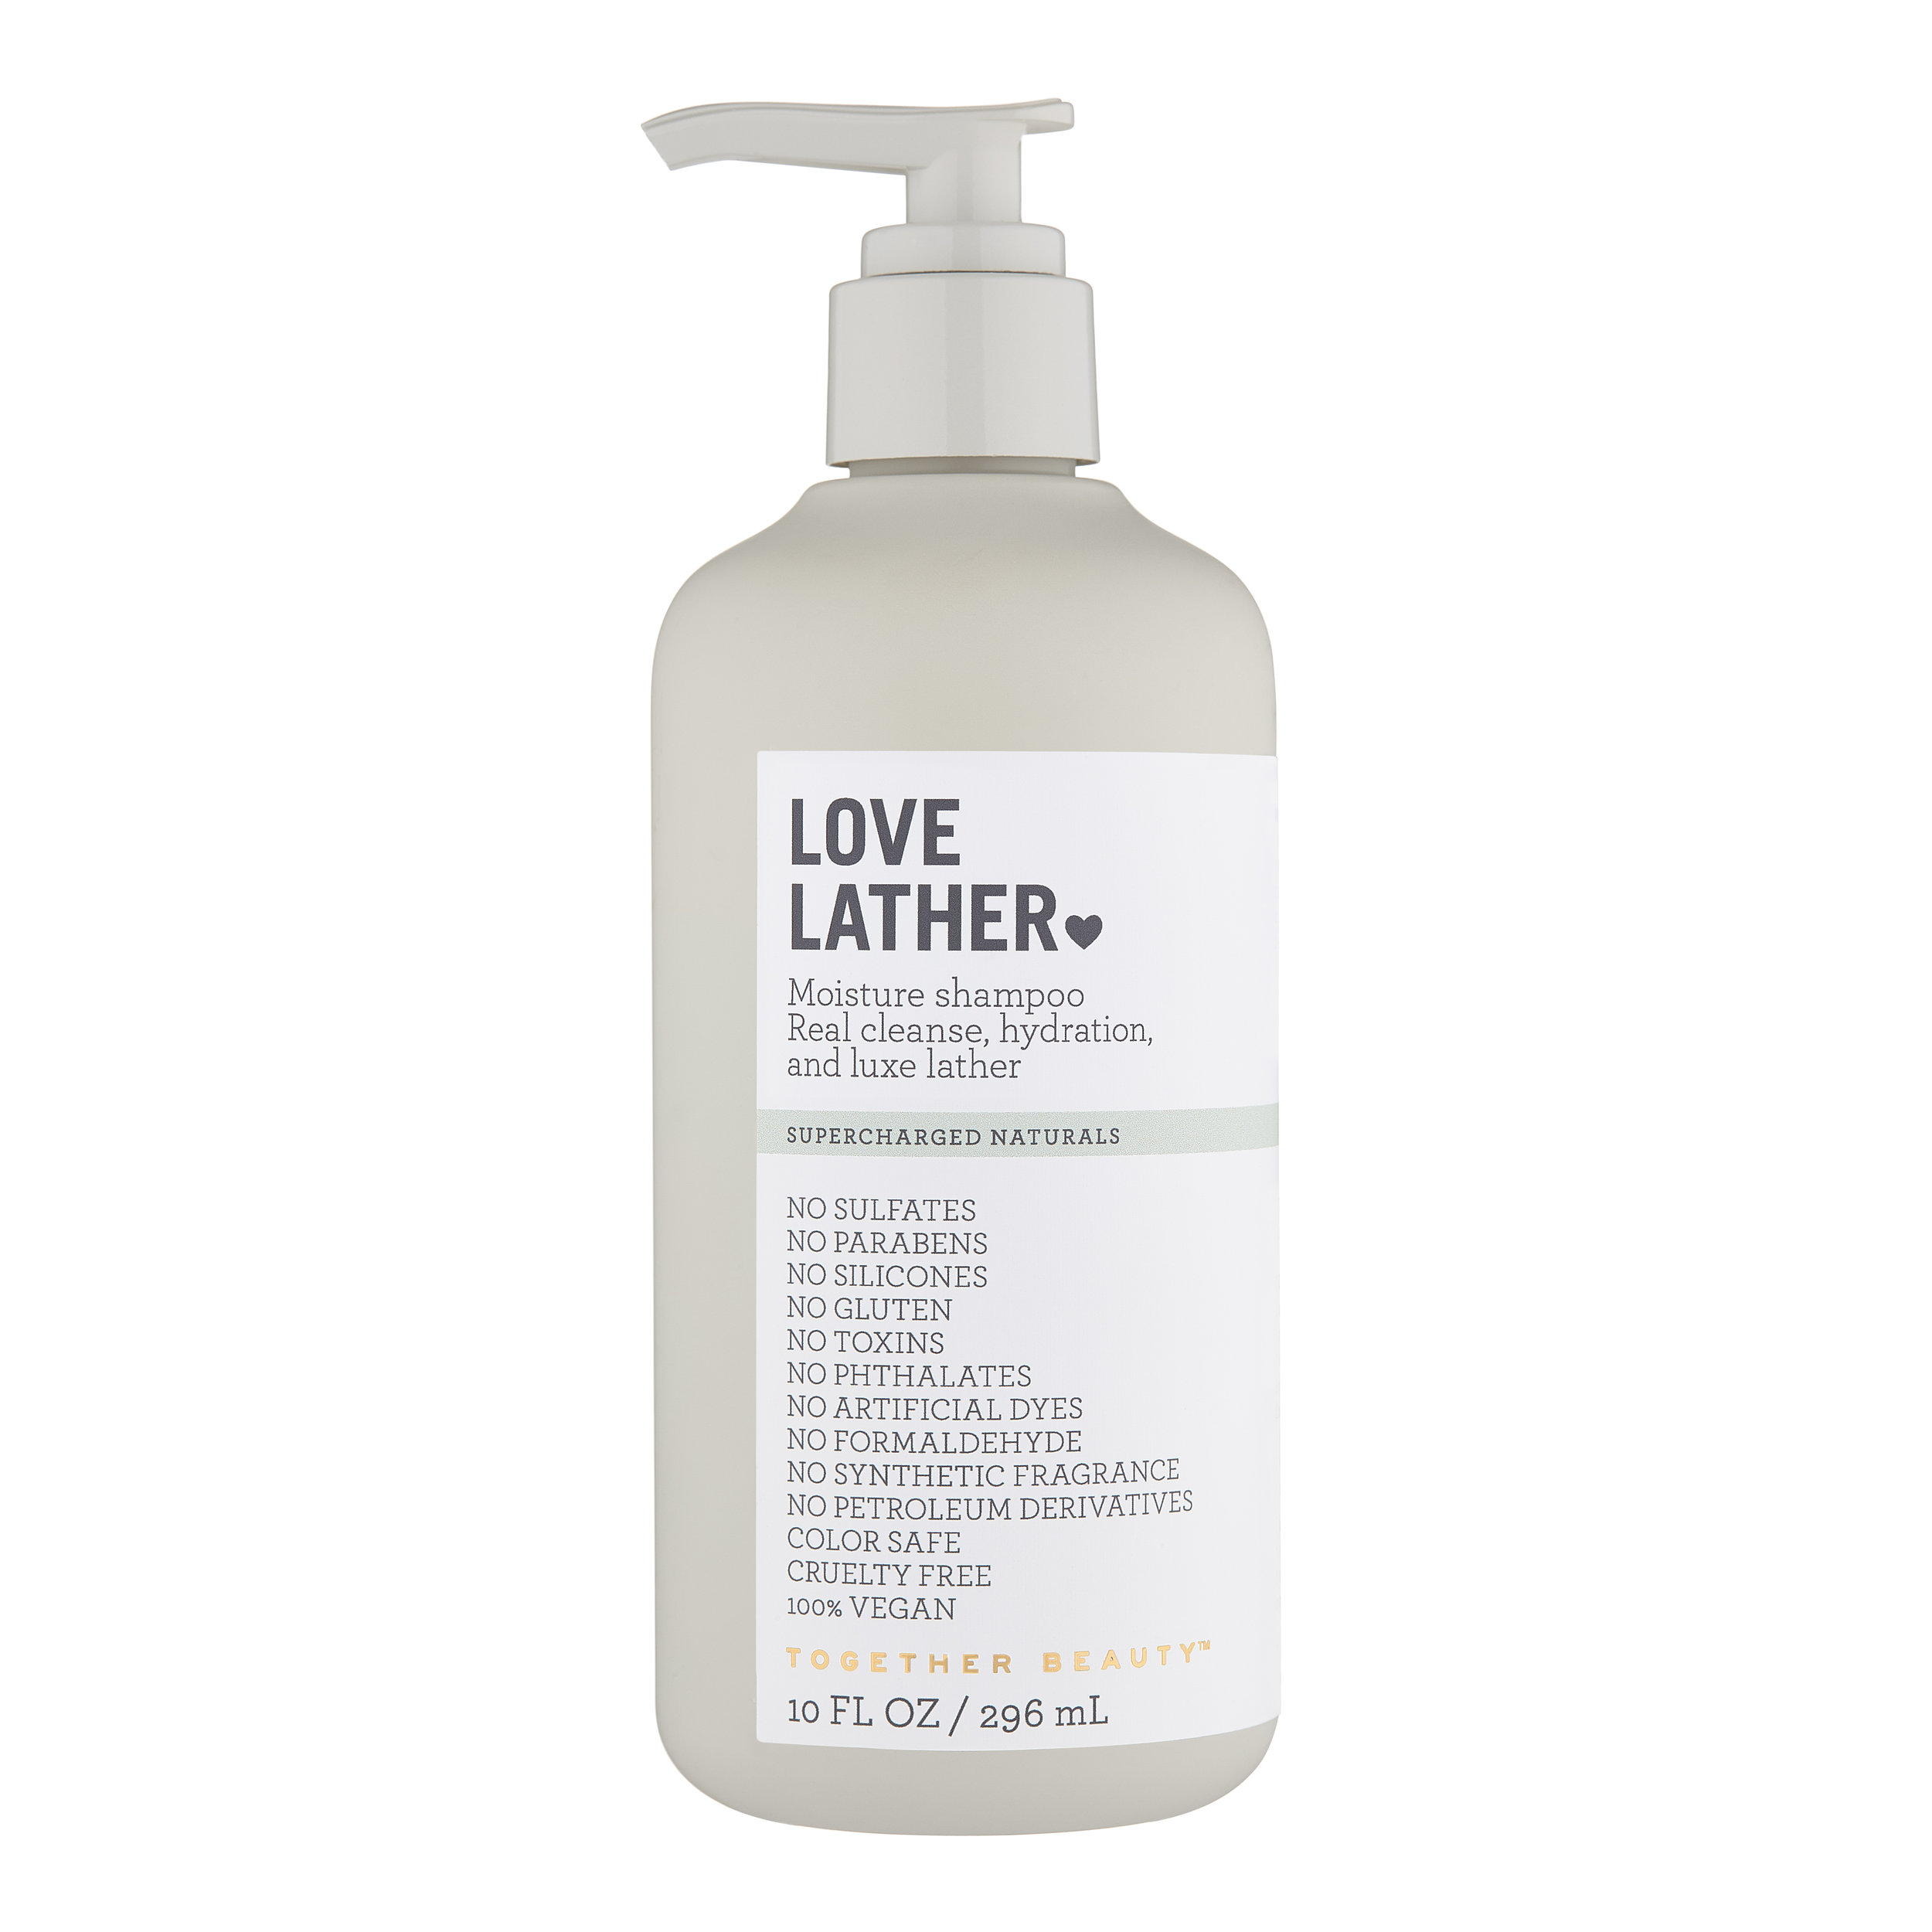 LOVE LATHER - Moisture shampooReal cleanse, hydration, and luxe lather